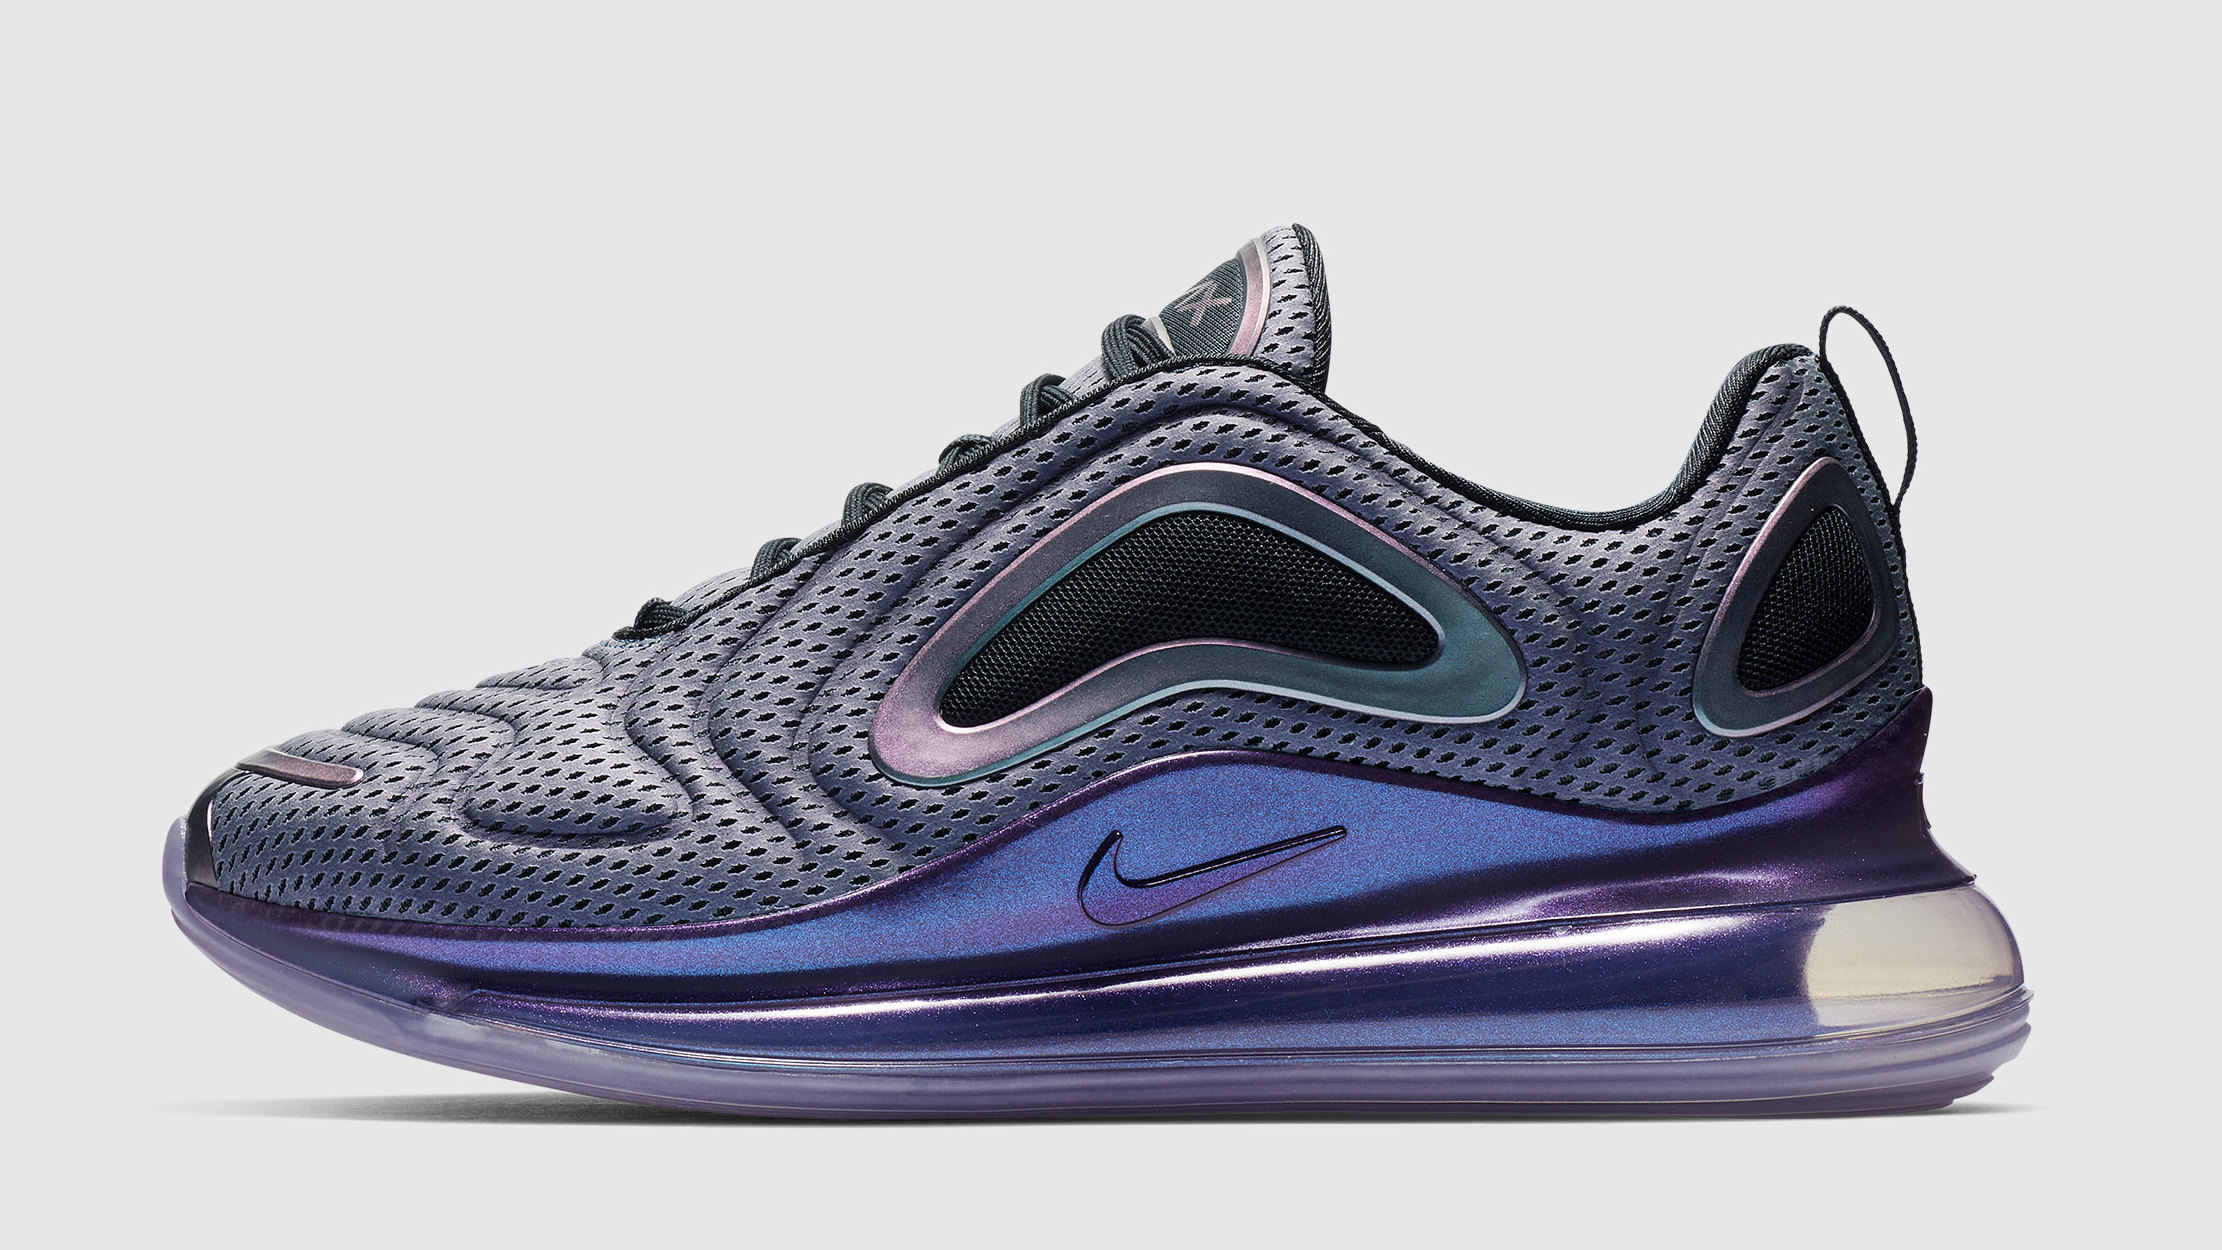 new arrivals c5ebb 69ab7 Nike Air Max 720 Launch Colorways Release Date   Sole Collector